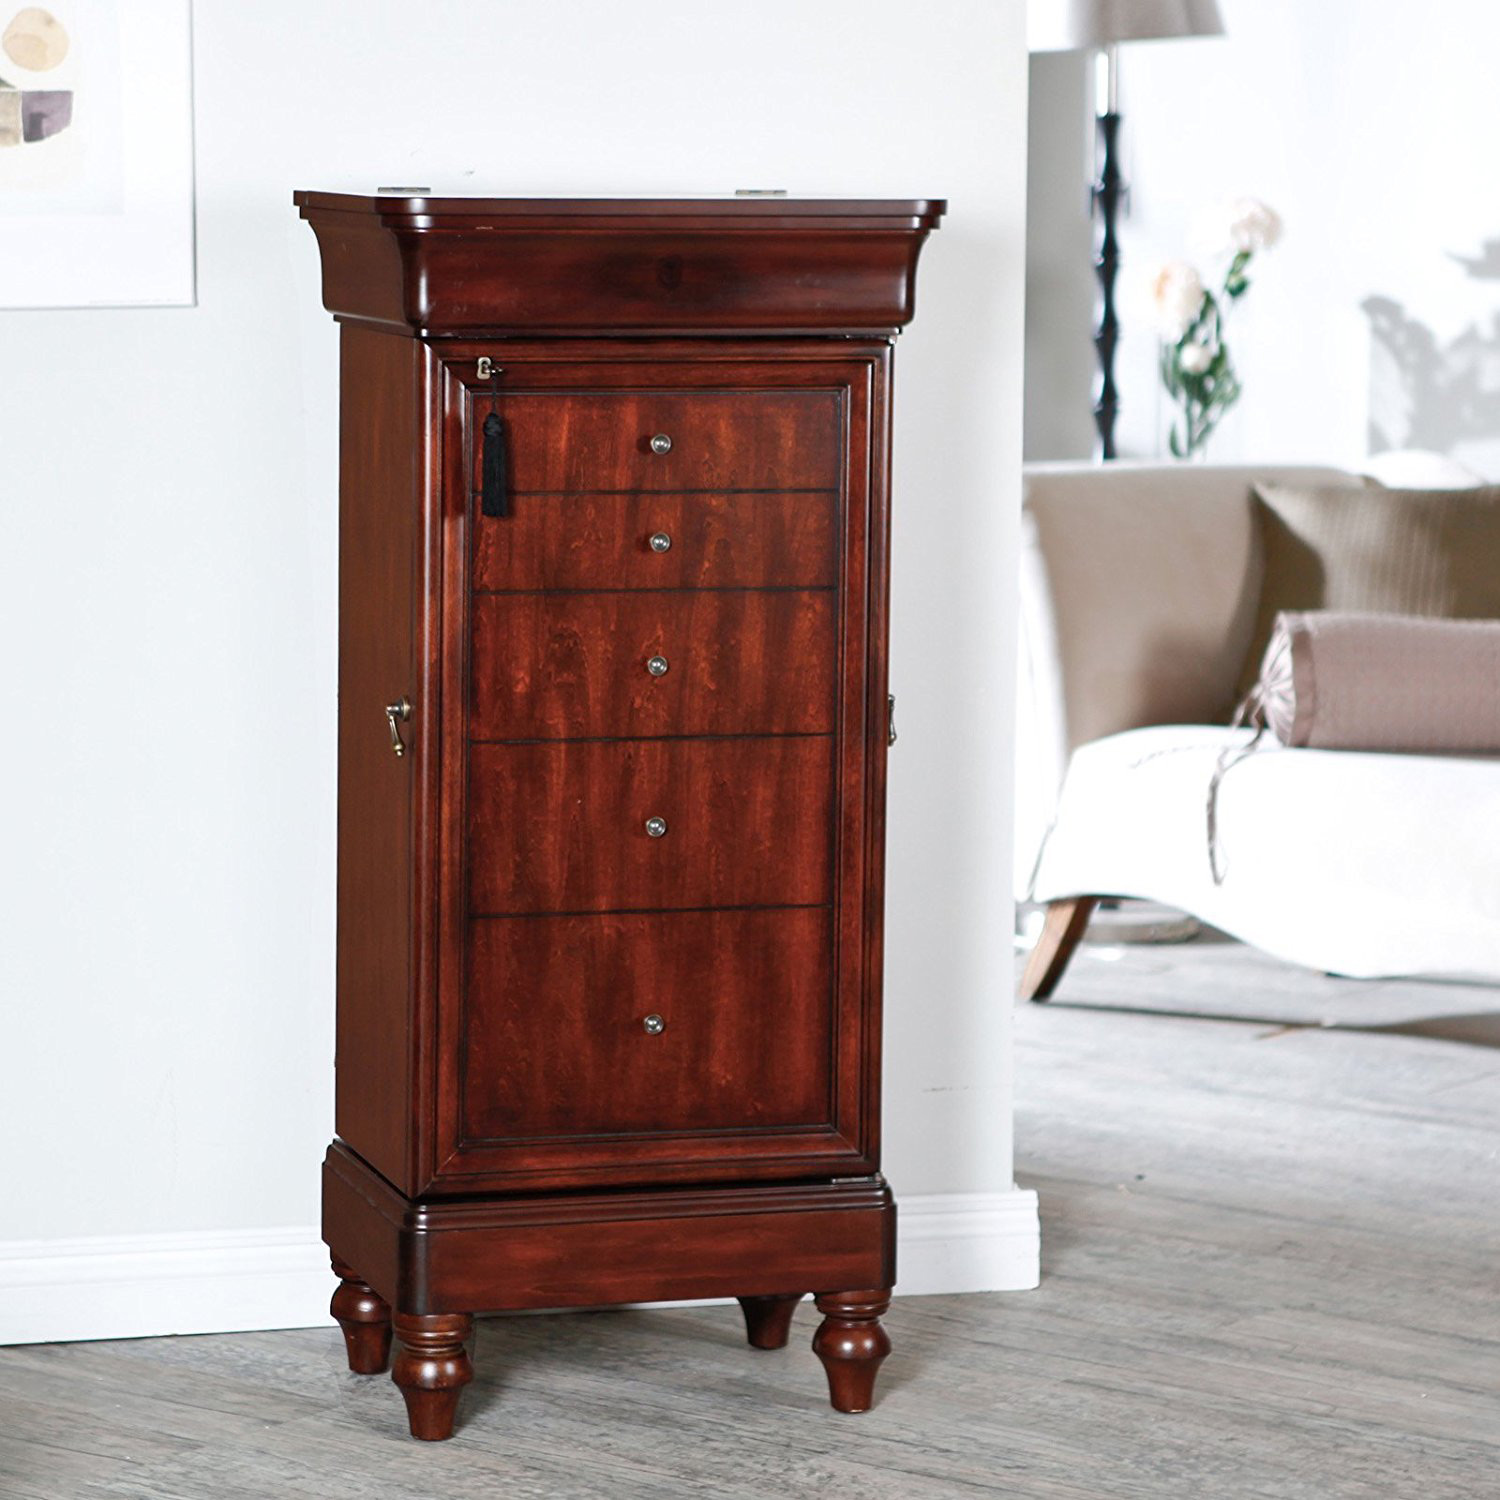 Classic Cherry Brown Wall Standing Rustic Jewelry Armoire